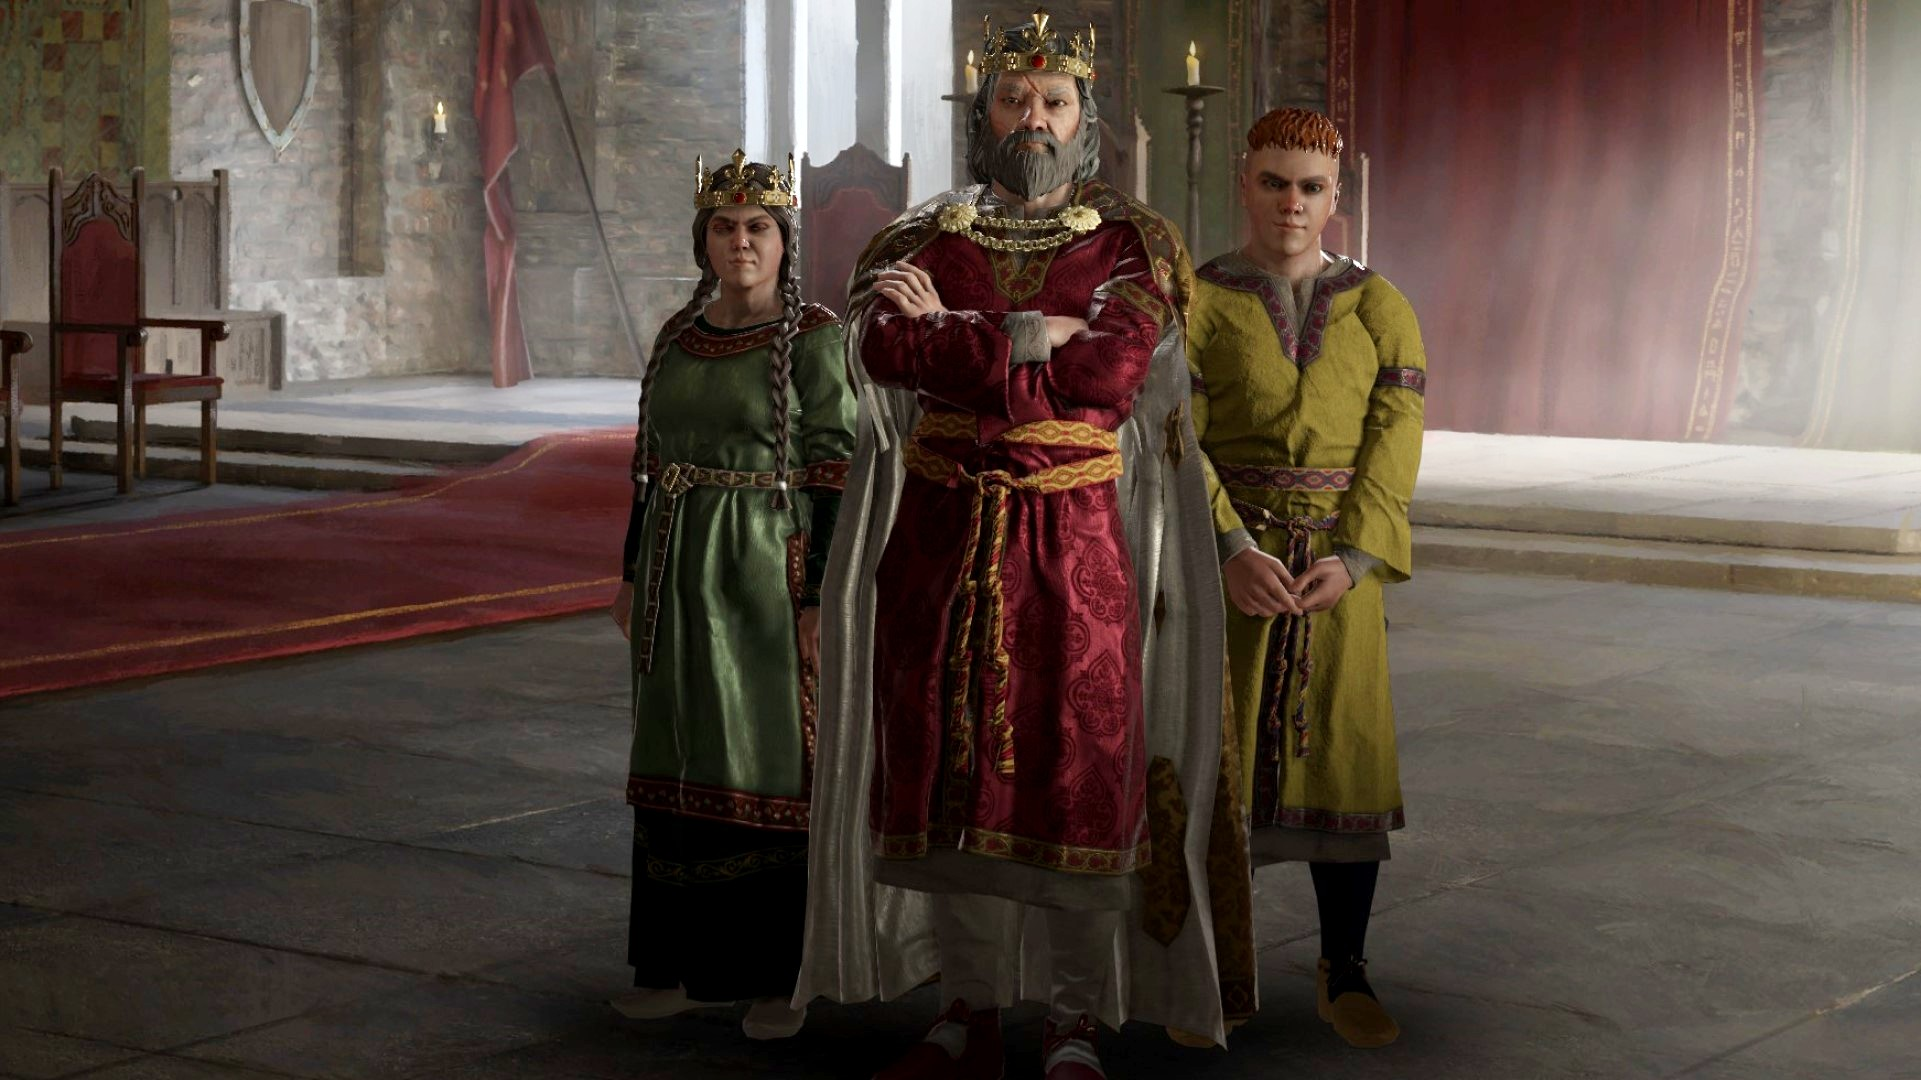 Crusader Kings 3's new DLC will be revealed at PDXCon Remixed next month